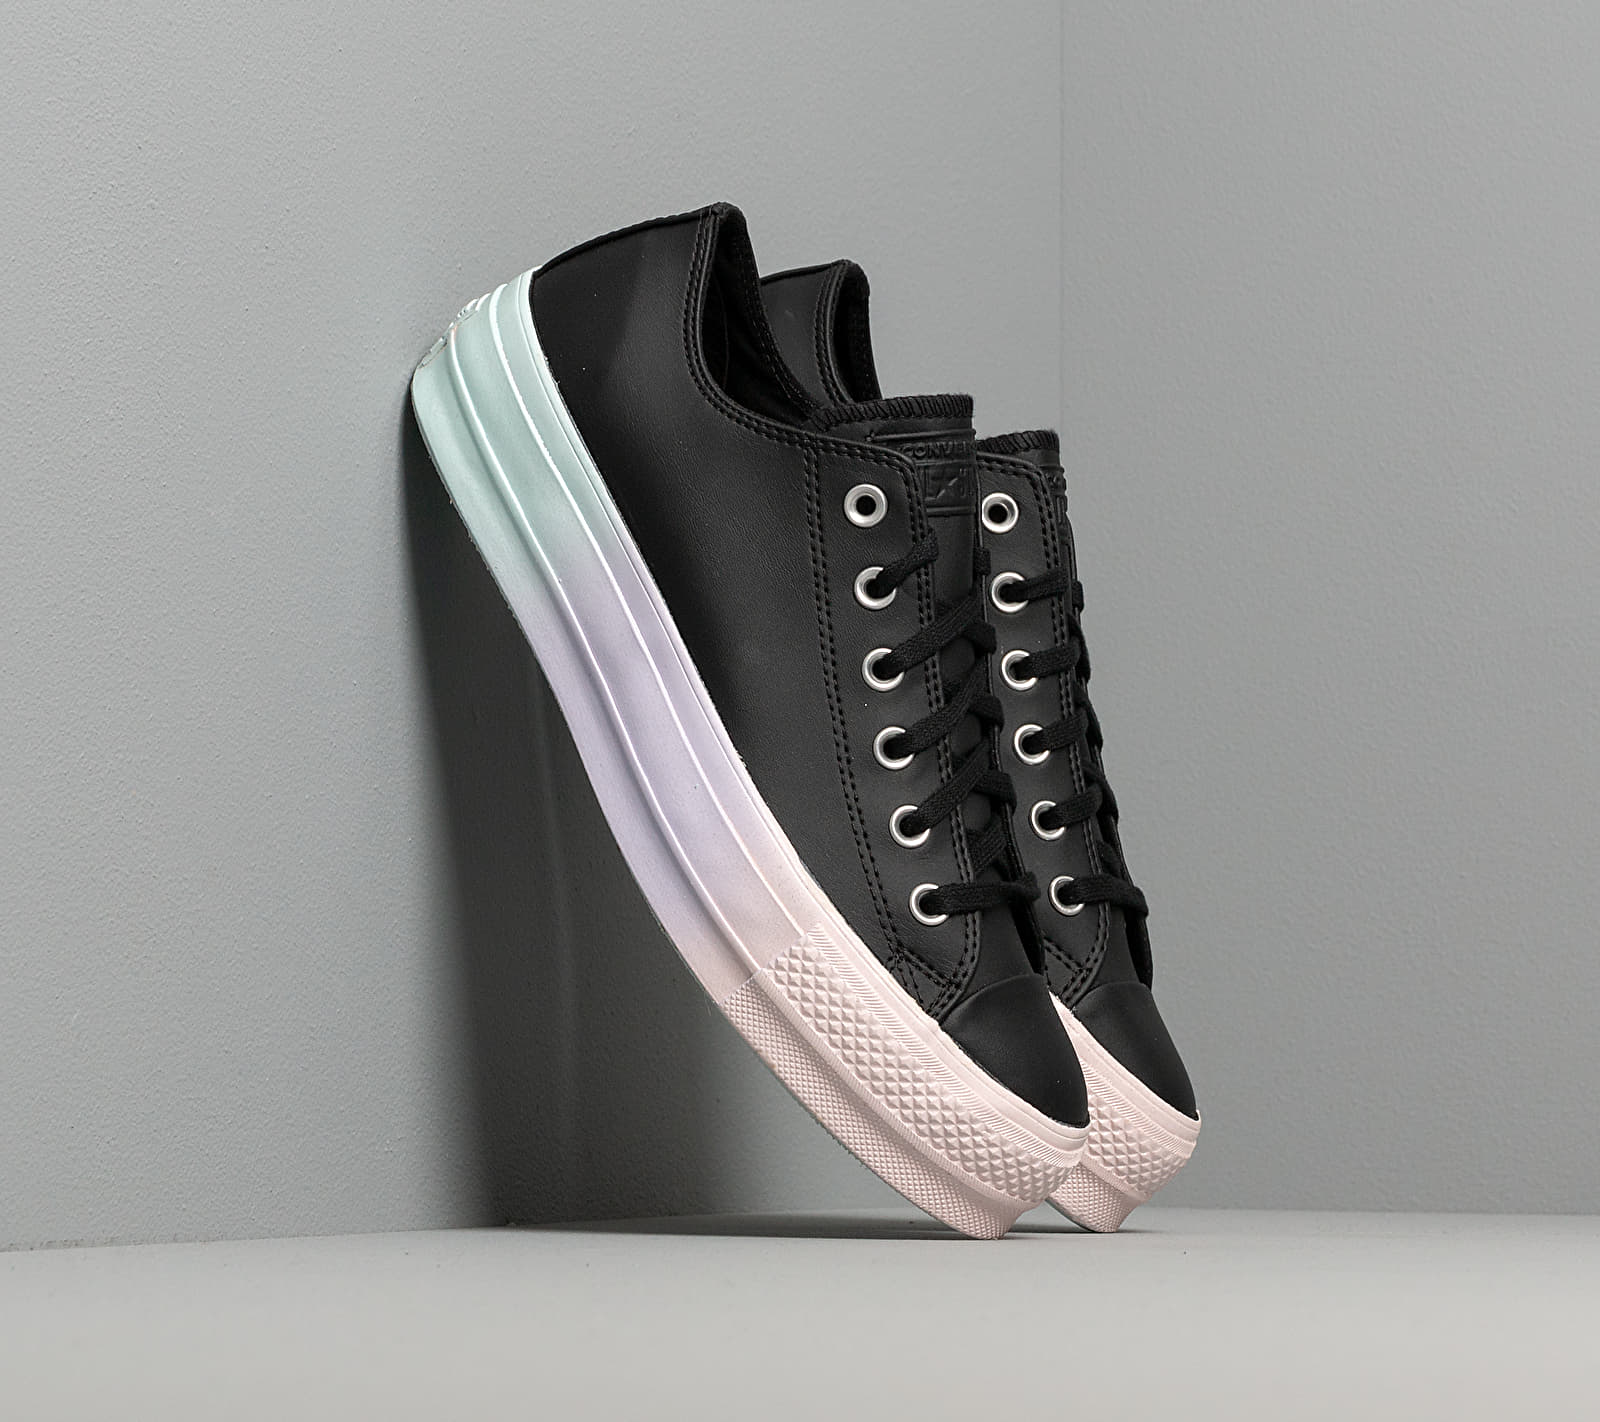 Converse Chuck Taylor All Star Lift Rainbow Midsole Black/ White/ Polar Blue